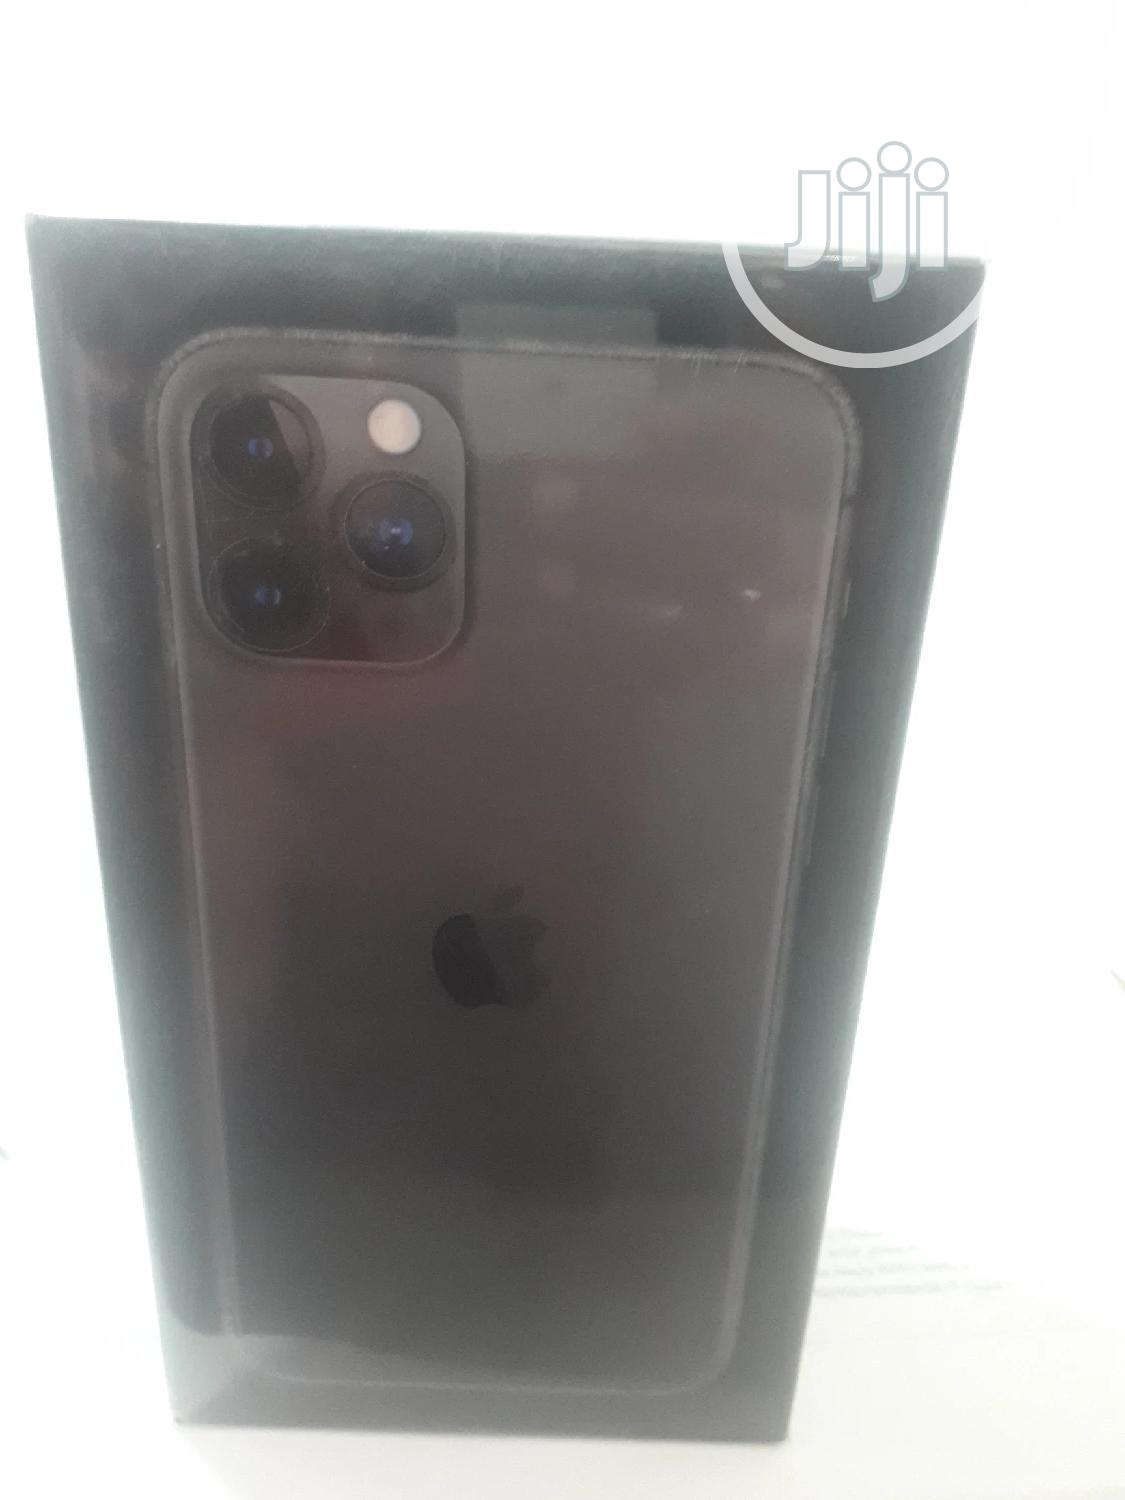 New Apple iPhone XS Max 64 GB Gray | Mobile Phones for sale in Ikeja, Lagos State, Nigeria